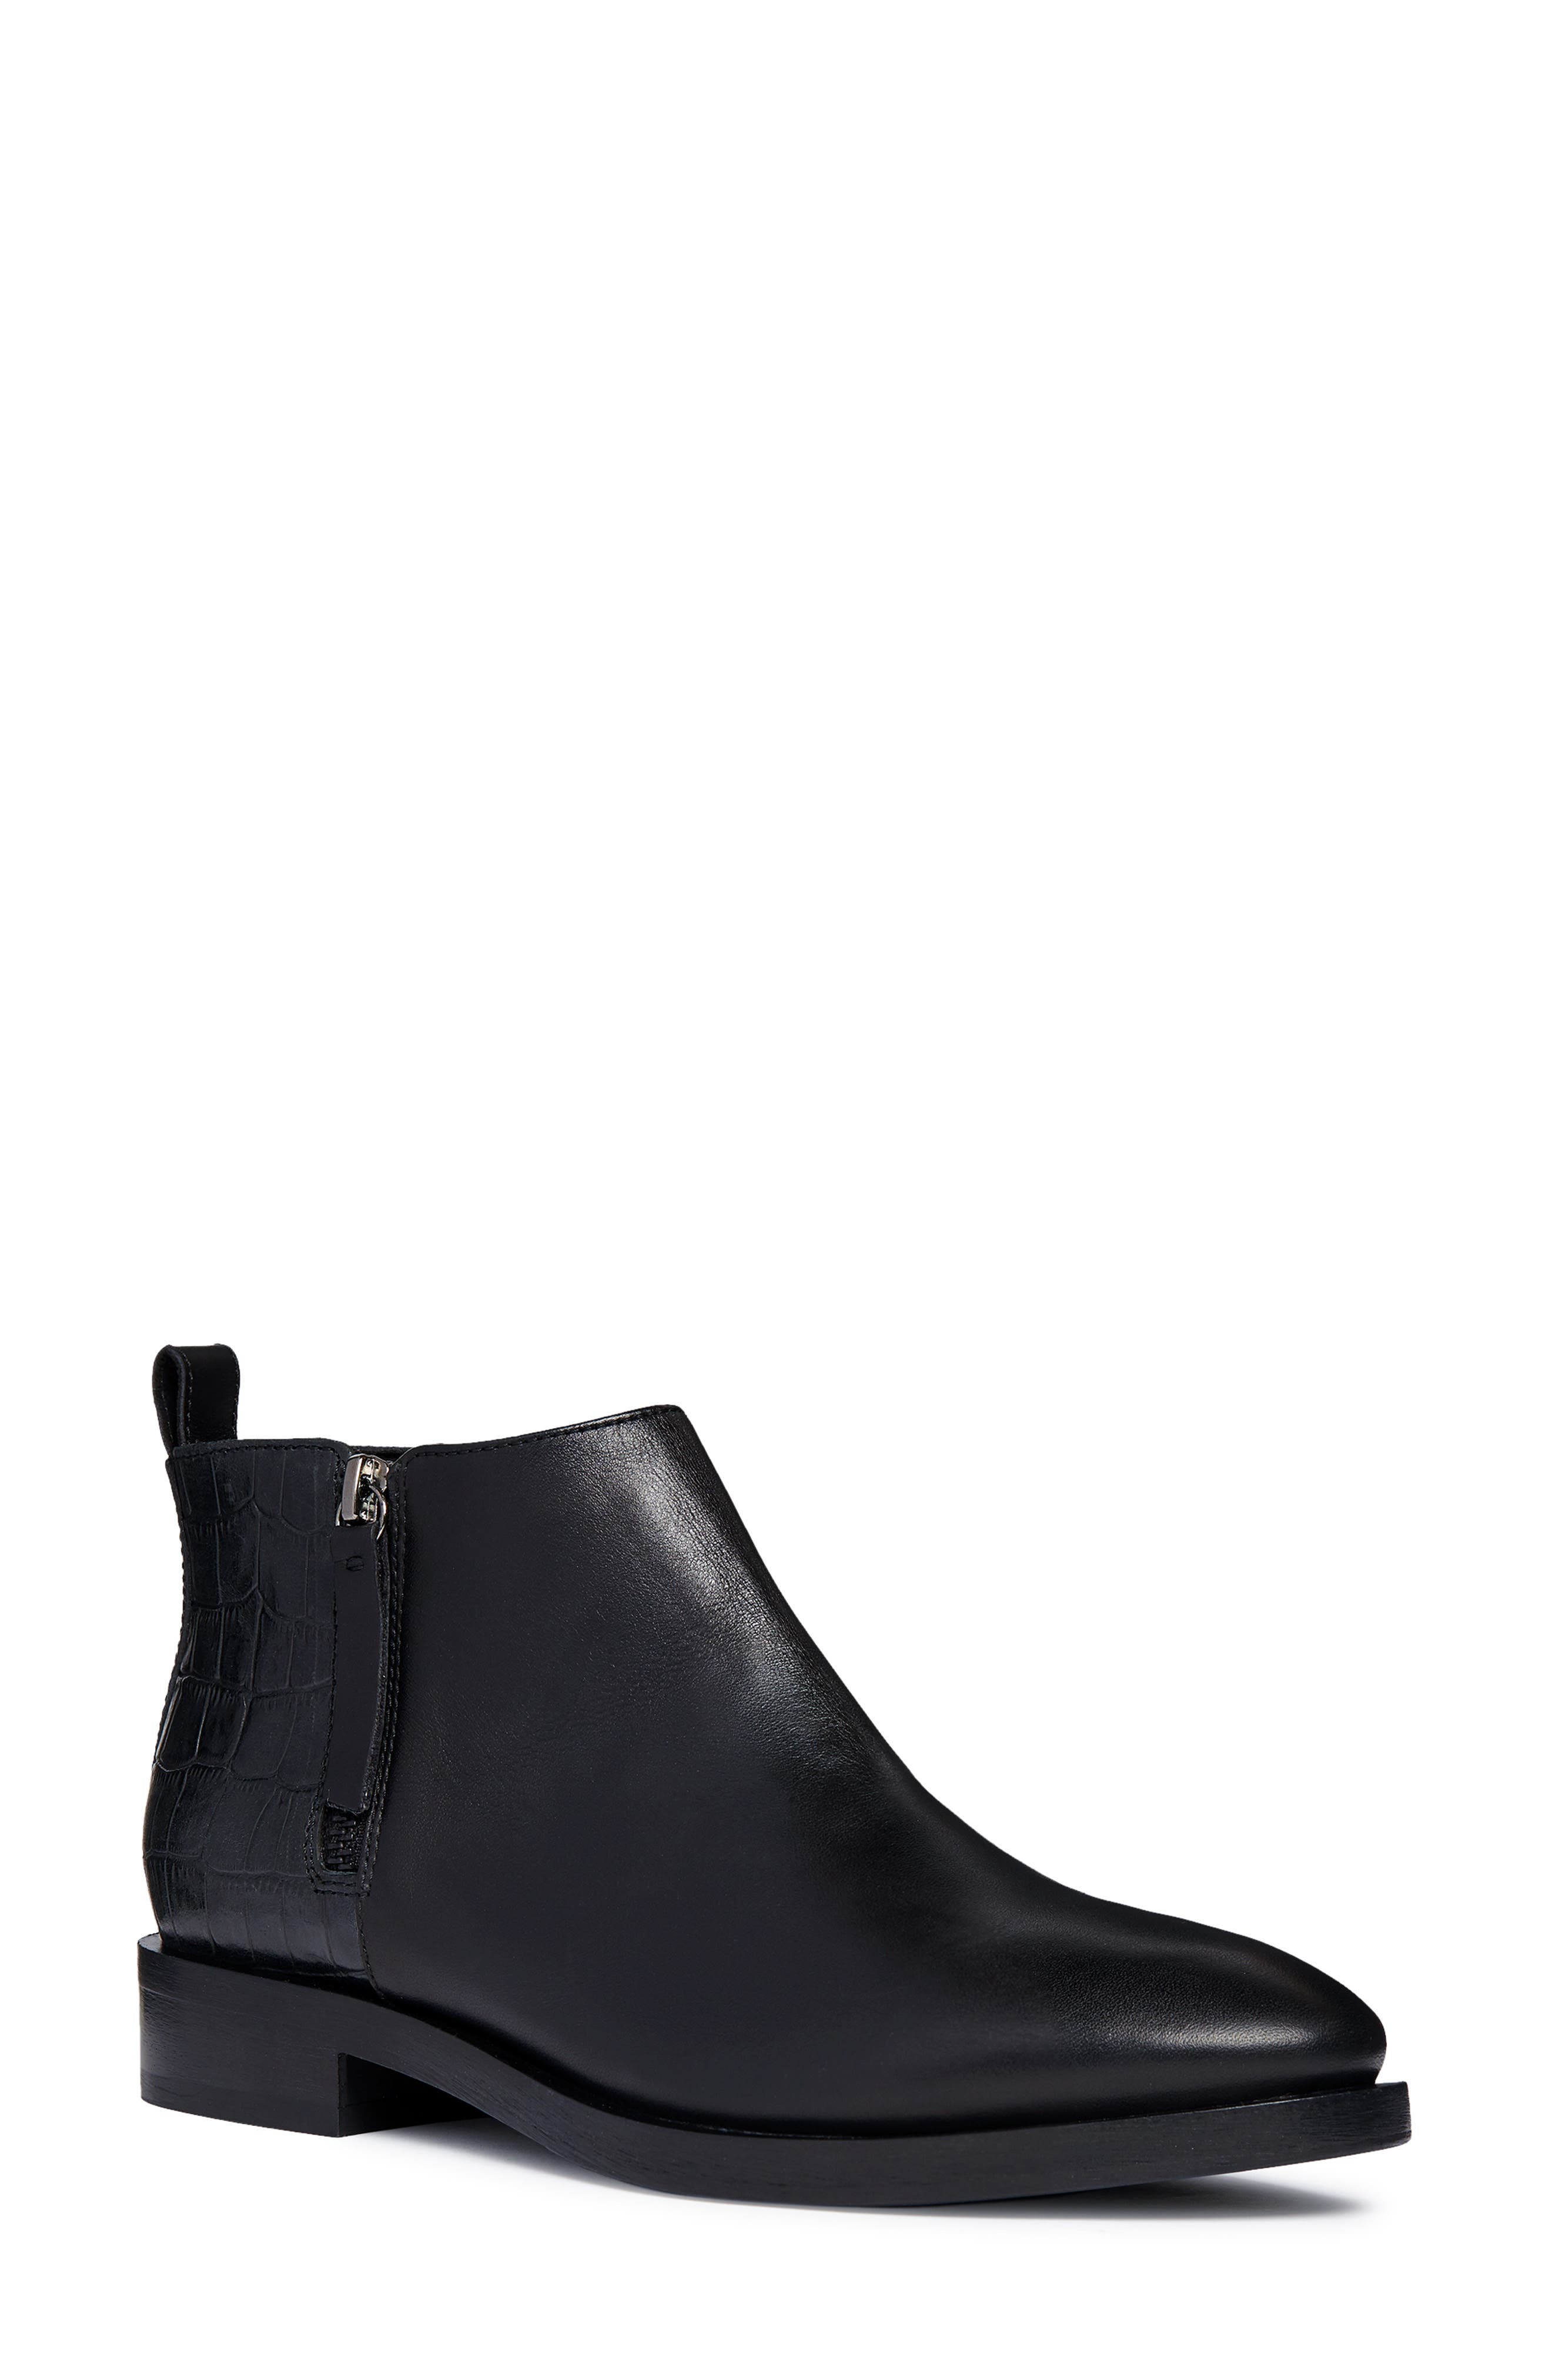 Brogue Bootie,                             Main thumbnail 1, color,                             BLACK LEATHER